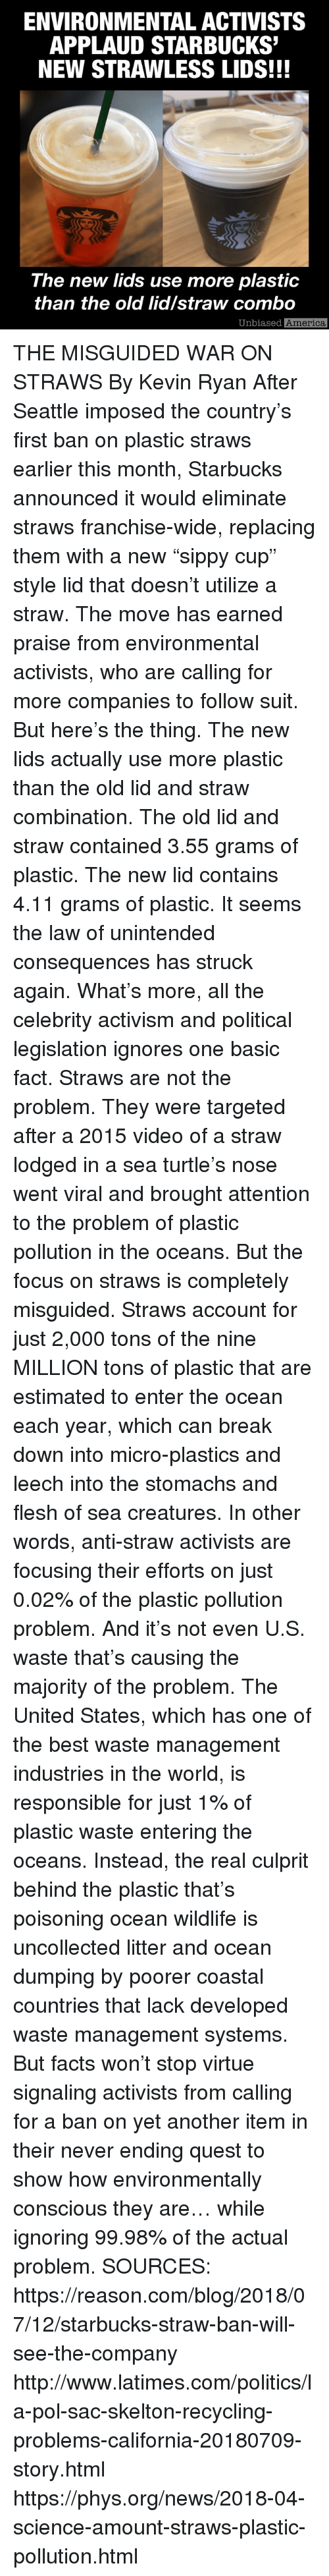 "America, Facts, and Memes: ENVIRONMENTAL ACTIVISTS  APPLAUD STARBUCKS  NEW STRAWLESS LIDS!!!  The new lids use more plastic  than the old lid/straw combo  Unbiased  America THE MISGUIDED WAR ON STRAWS By Kevin Ryan  After Seattle imposed the country's first ban on plastic straws earlier this month, Starbucks announced it would eliminate straws franchise-wide, replacing them with a new ""sippy cup"" style lid that doesn't utilize a straw.  The move has earned praise from environmental activists, who are calling for more companies to follow suit.  But here's the thing.  The new lids actually use more plastic than the old lid and straw combination.  The old lid and straw contained 3.55 grams of plastic.  The new lid contains 4.11 grams of plastic.  It seems the law of unintended consequences has struck again.  What's more, all the celebrity activism and political legislation ignores one basic fact.  Straws are not the problem.  They were targeted after a 2015 video of a straw lodged in a sea turtle's nose went viral and brought attention to the problem of plastic pollution in the oceans.  But the focus on straws is completely misguided.  Straws account for just 2,000 tons of the nine MILLION tons of plastic that are estimated to enter the ocean each year, which can break down into micro-plastics and leech into the stomachs and flesh of sea creatures.  In other words, anti-straw activists are focusing their efforts on just 0.02% of the plastic pollution problem.  And it's not even U.S. waste that's causing the majority of the problem.  The United States, which has one of the best waste management industries in the world, is responsible for just 1% of plastic waste entering the oceans.  Instead, the real culprit behind the plastic that's poisoning ocean wildlife is uncollected litter and ocean dumping by poorer coastal countries that lack developed waste management systems.    But facts won't stop virtue signaling activists from calling for a ban on yet another item in their never ending quest to show how environmentally conscious they are… while ignoring 99.98% of the actual problem.  SOURCES: https://reason.com/blog/2018/07/12/starbucks-straw-ban-will-see-the-company http://www.latimes.com/politics/la-pol-sac-skelton-recycling-problems-california-20180709-story.html https://phys.org/news/2018-04-science-amount-straws-plastic-pollution.html"